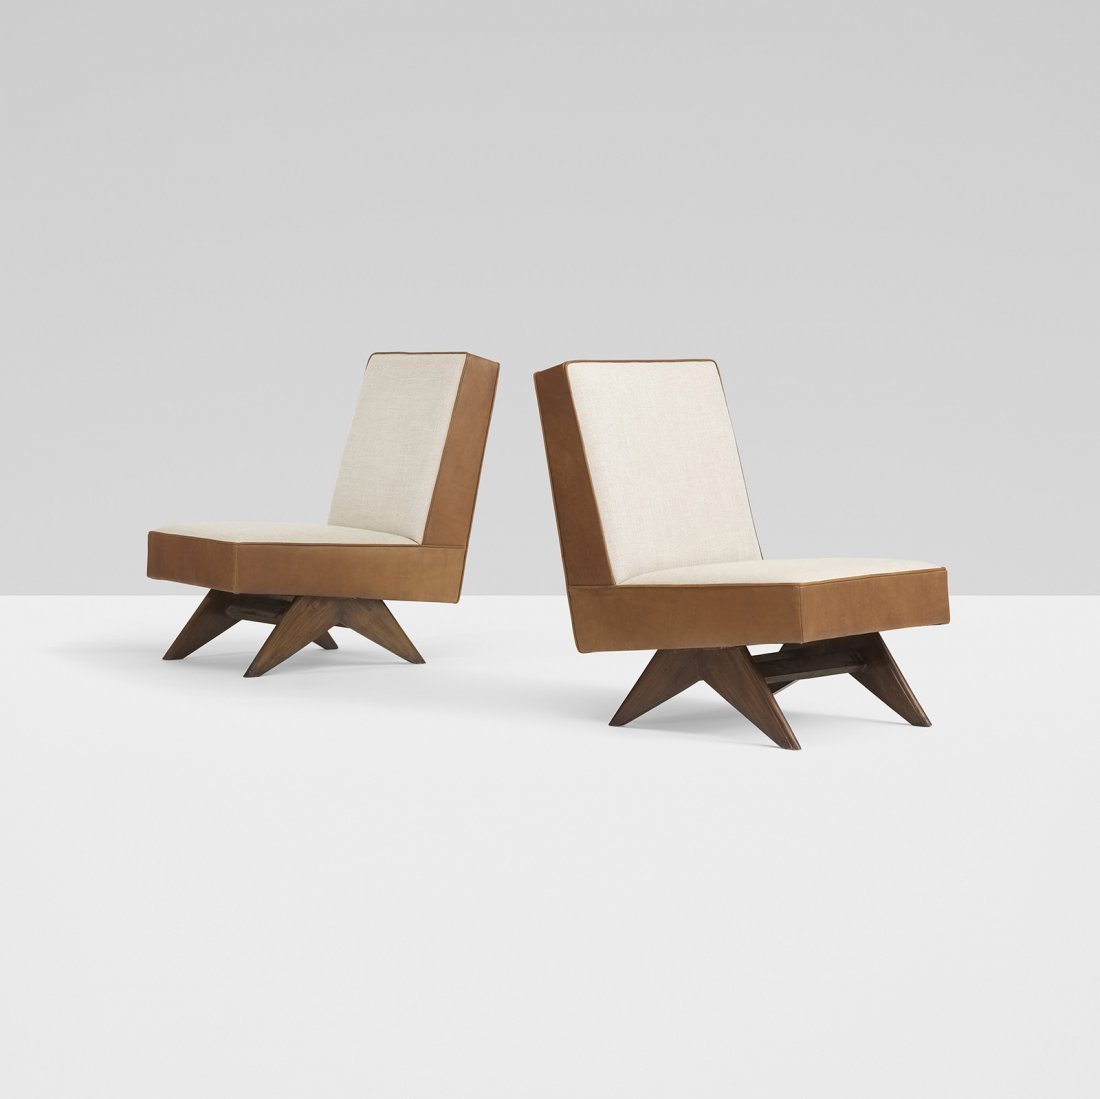 Pierre Jeanneret pair of lounge chairs from Chandigarh